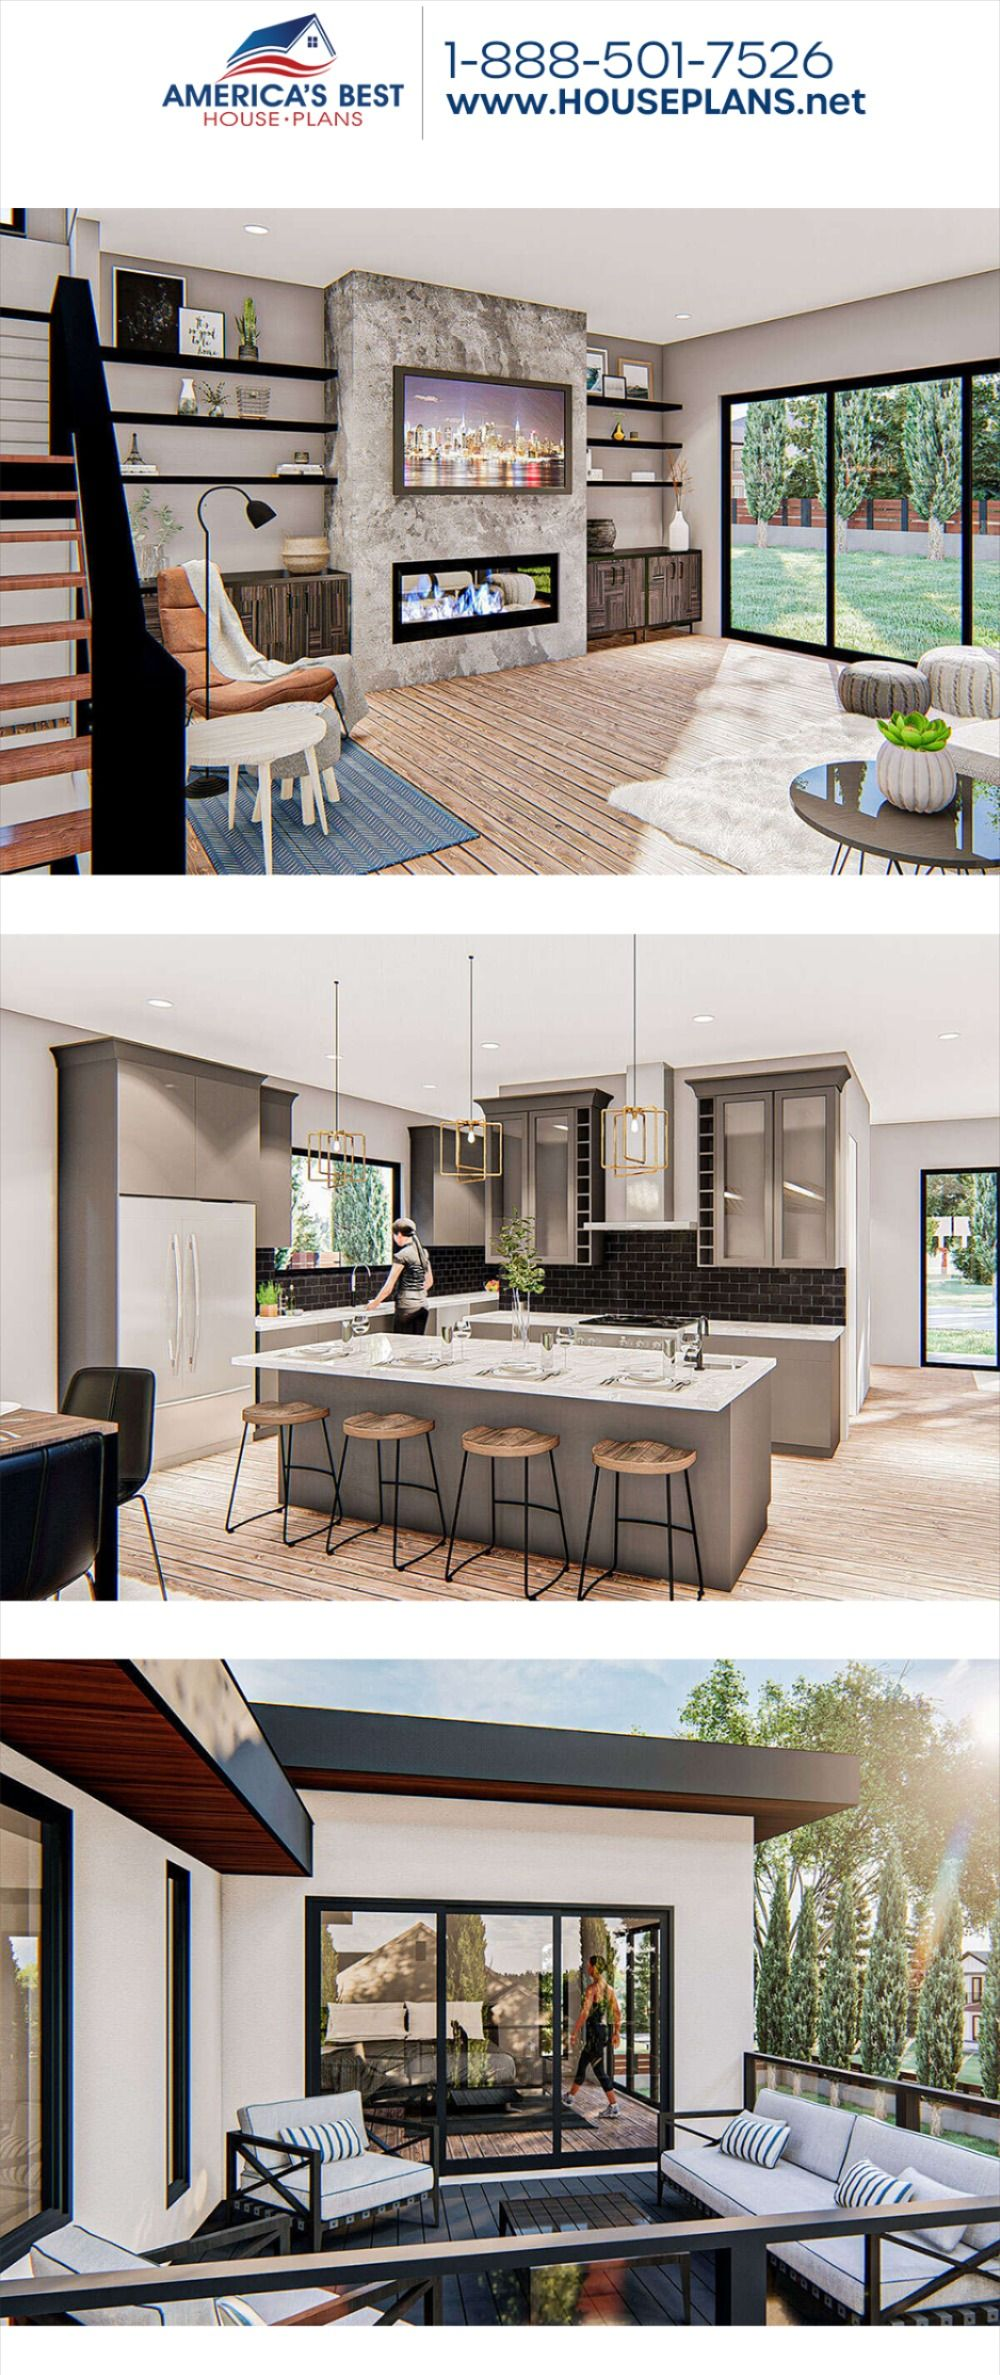 Get to know this stunning 2,723 sq. ft. Modern house, Plan 963-00433 features 2,723 sq. ft., 3 bedrooms, 2.5 bathrooms, a kitchen island, an open floor plan, a formal living room, and a media room. #modernstyle #modernhome #twostoryhome #openfloorplan #architecture #houseplans #housedesign #homedesign #homedesigns #architecturalplans #newconstruction #floorplans #dreamhome #dreamhouseplans #abhouseplans #besthouseplans #newhome #newhouse #homesweethome #buildingahome #buildahome #residentialplan